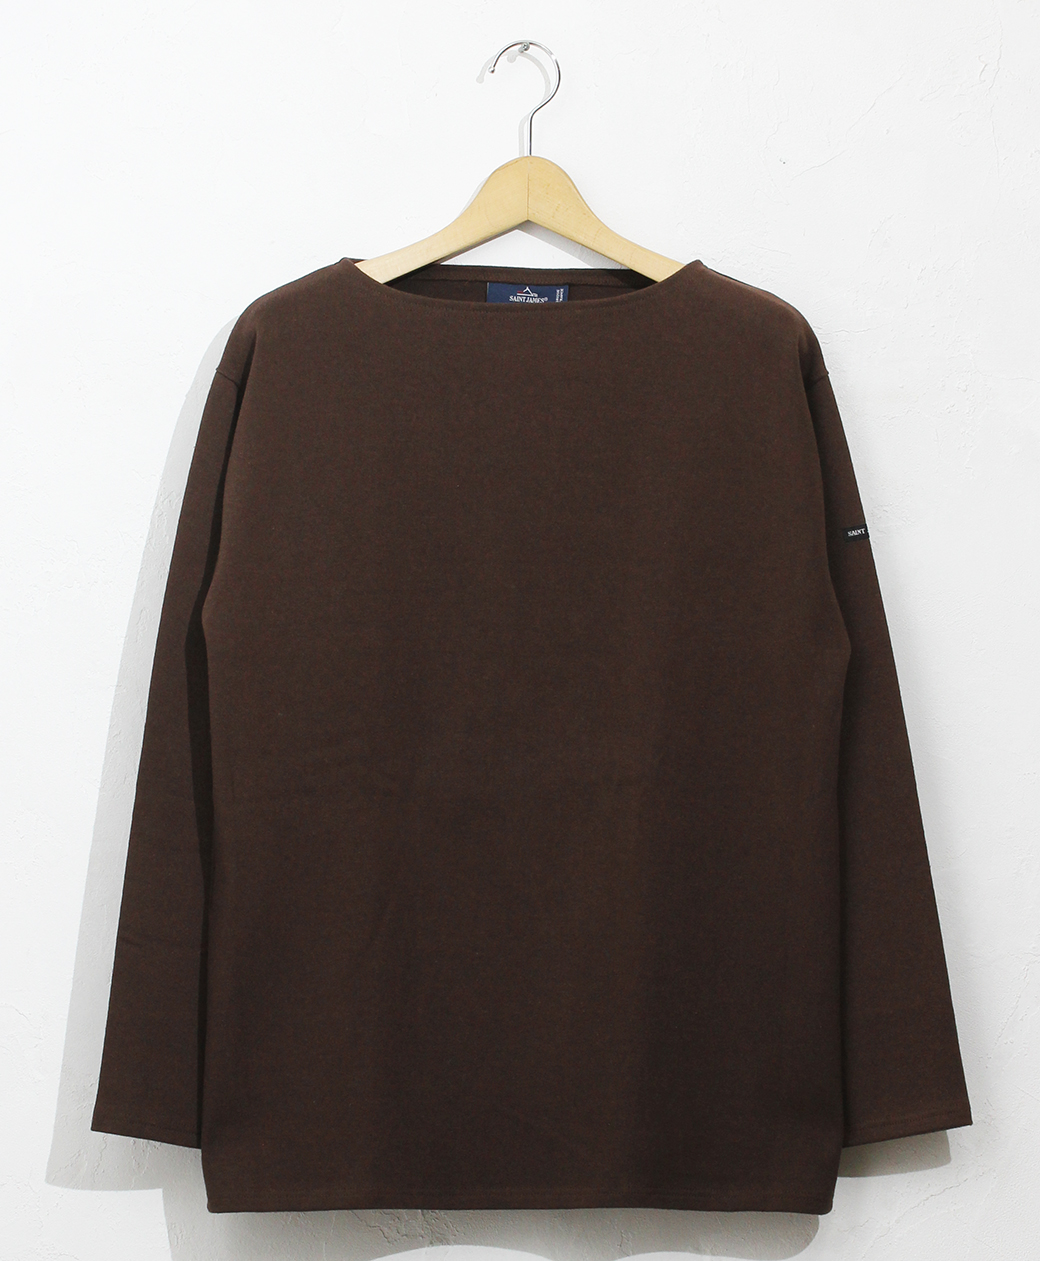 SAINT JAMES OUESSANT SOLID(CHOCO)